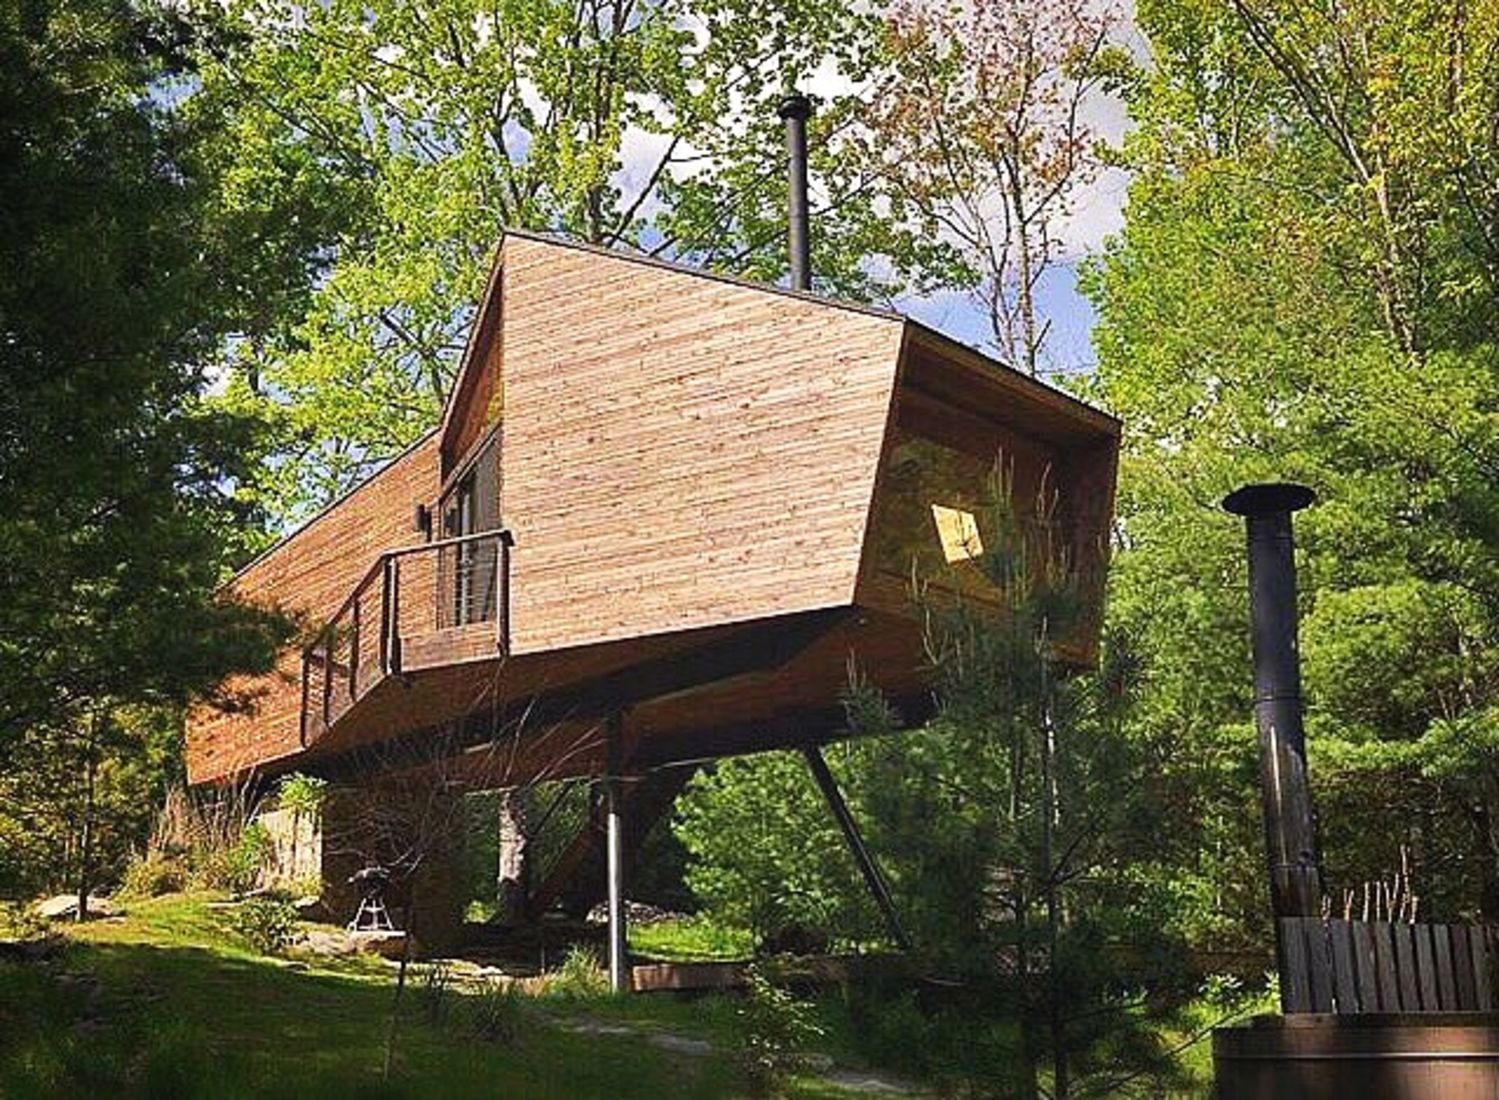 Peek Inside This Gorgeous Treehouse For Adults